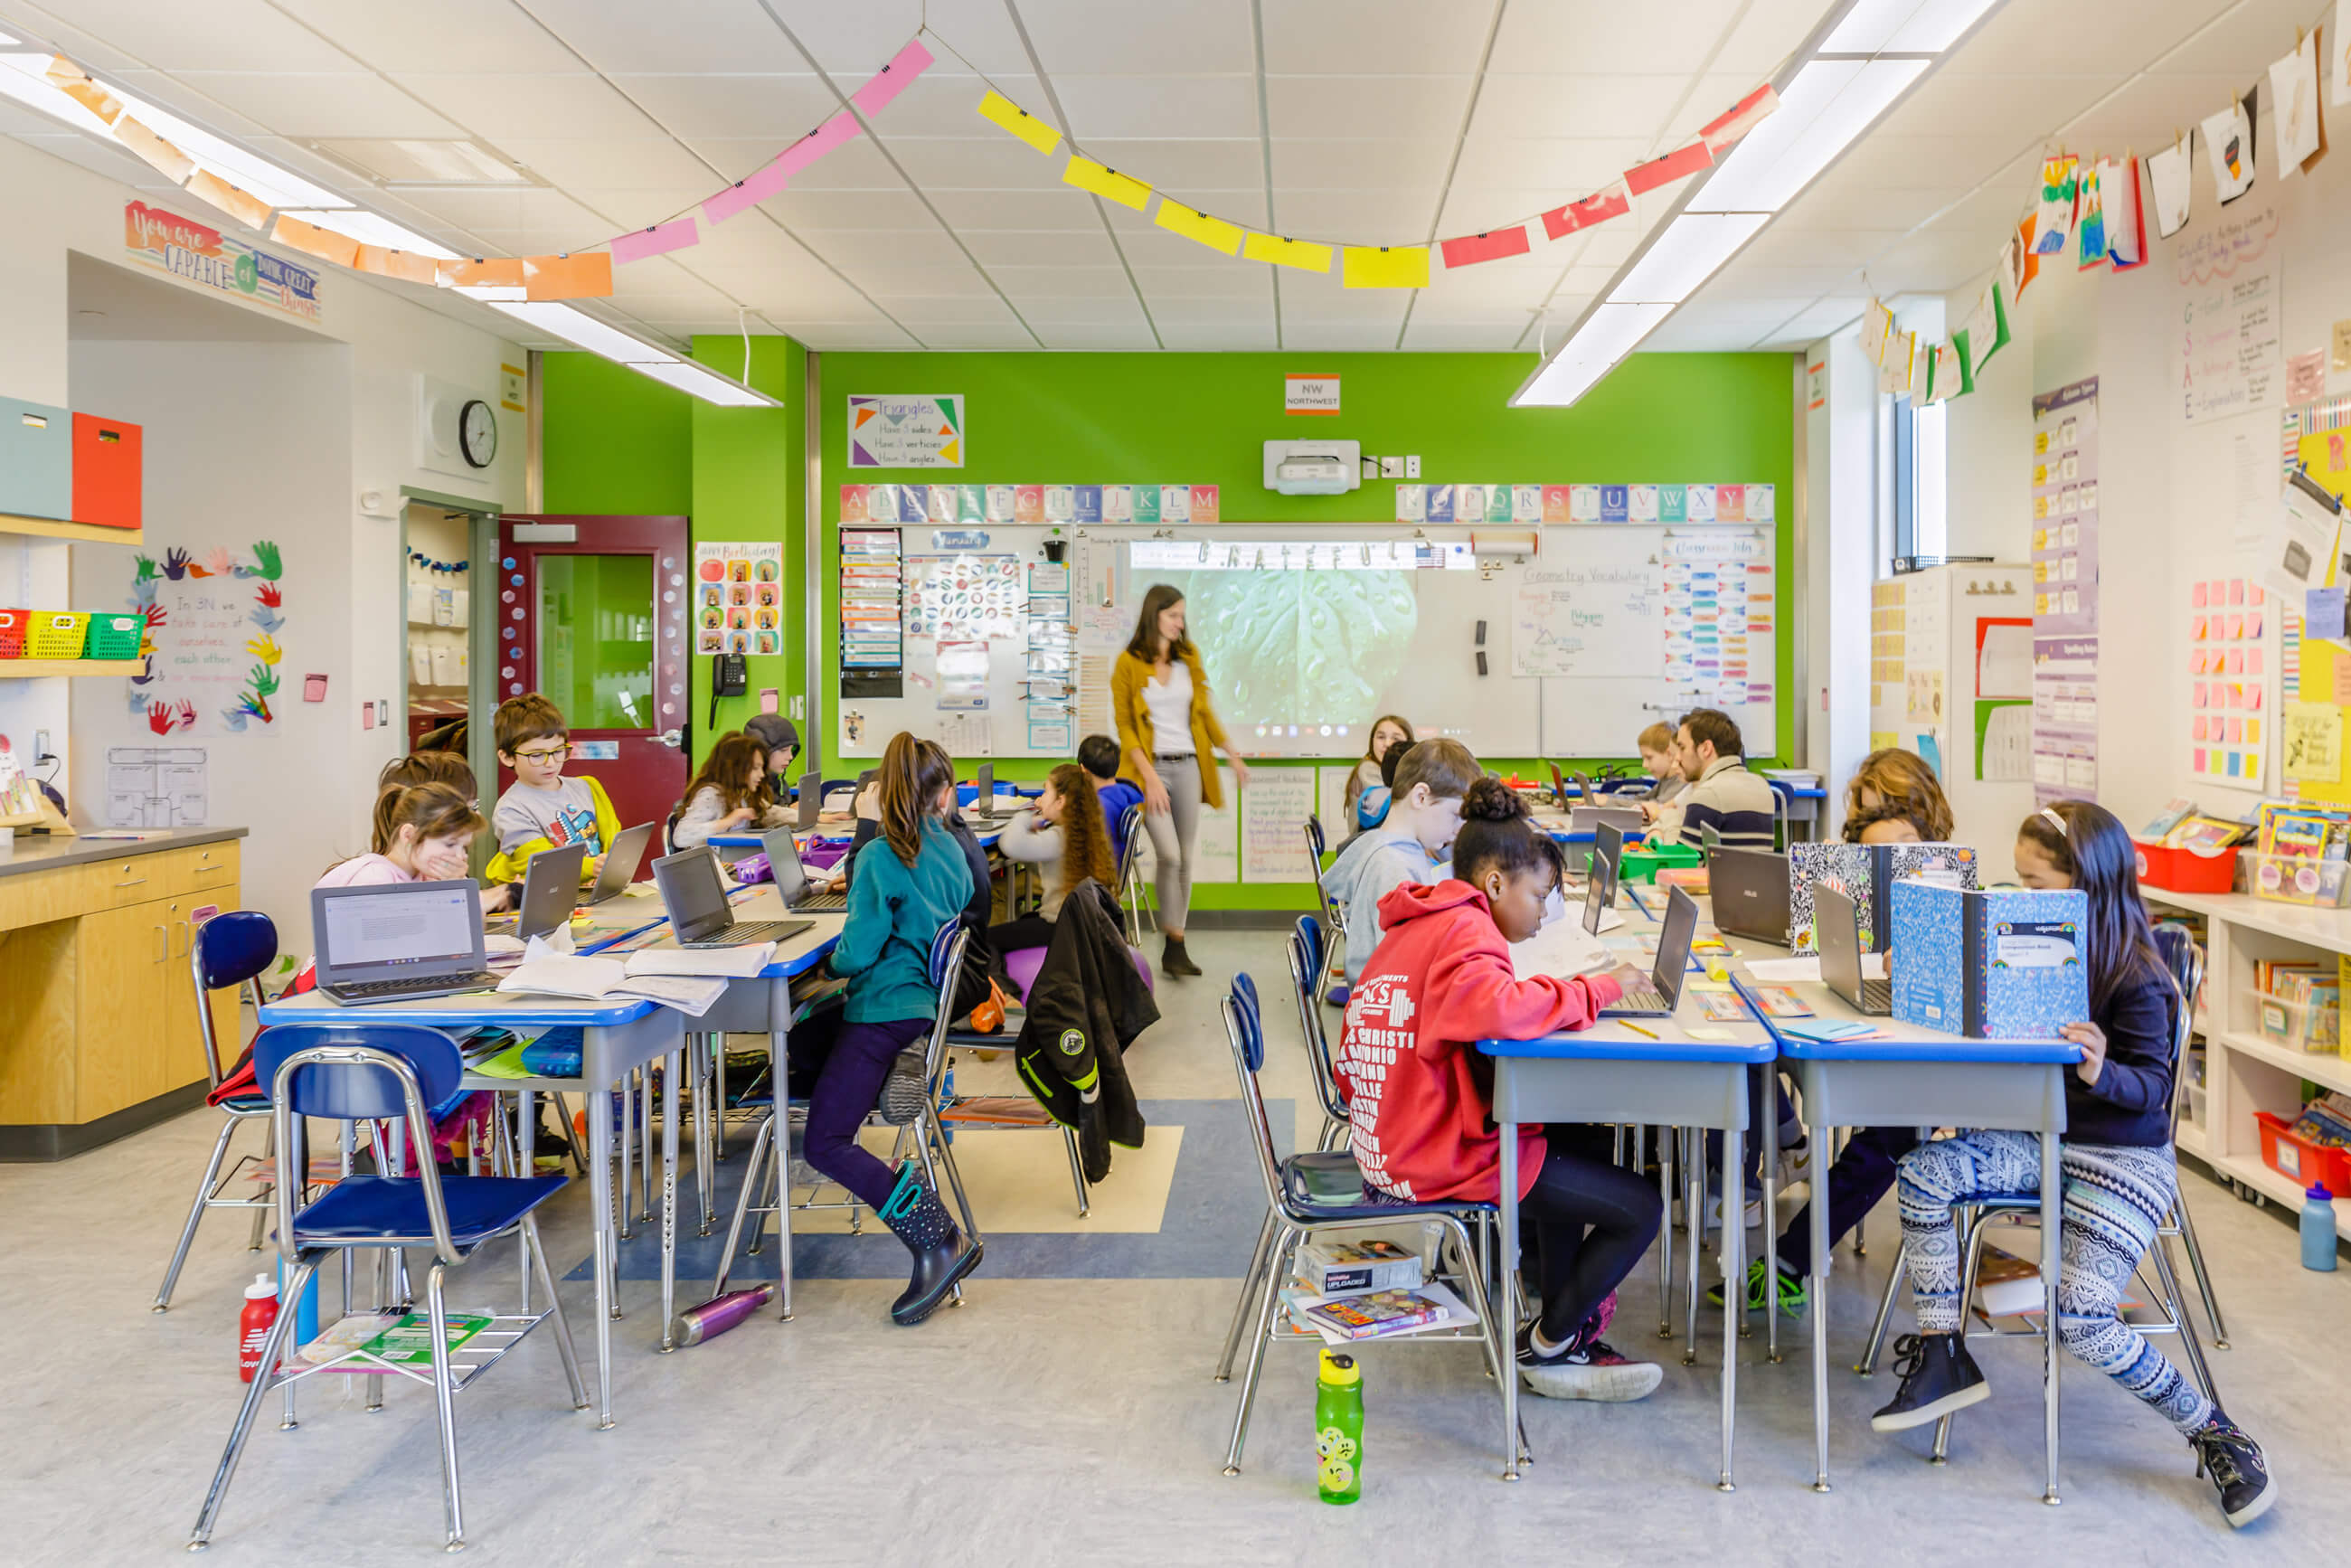 Students at their desks in a classroom with the teacher in front of the whiteboard on the green wall, with streamers hanging from the ceiling.